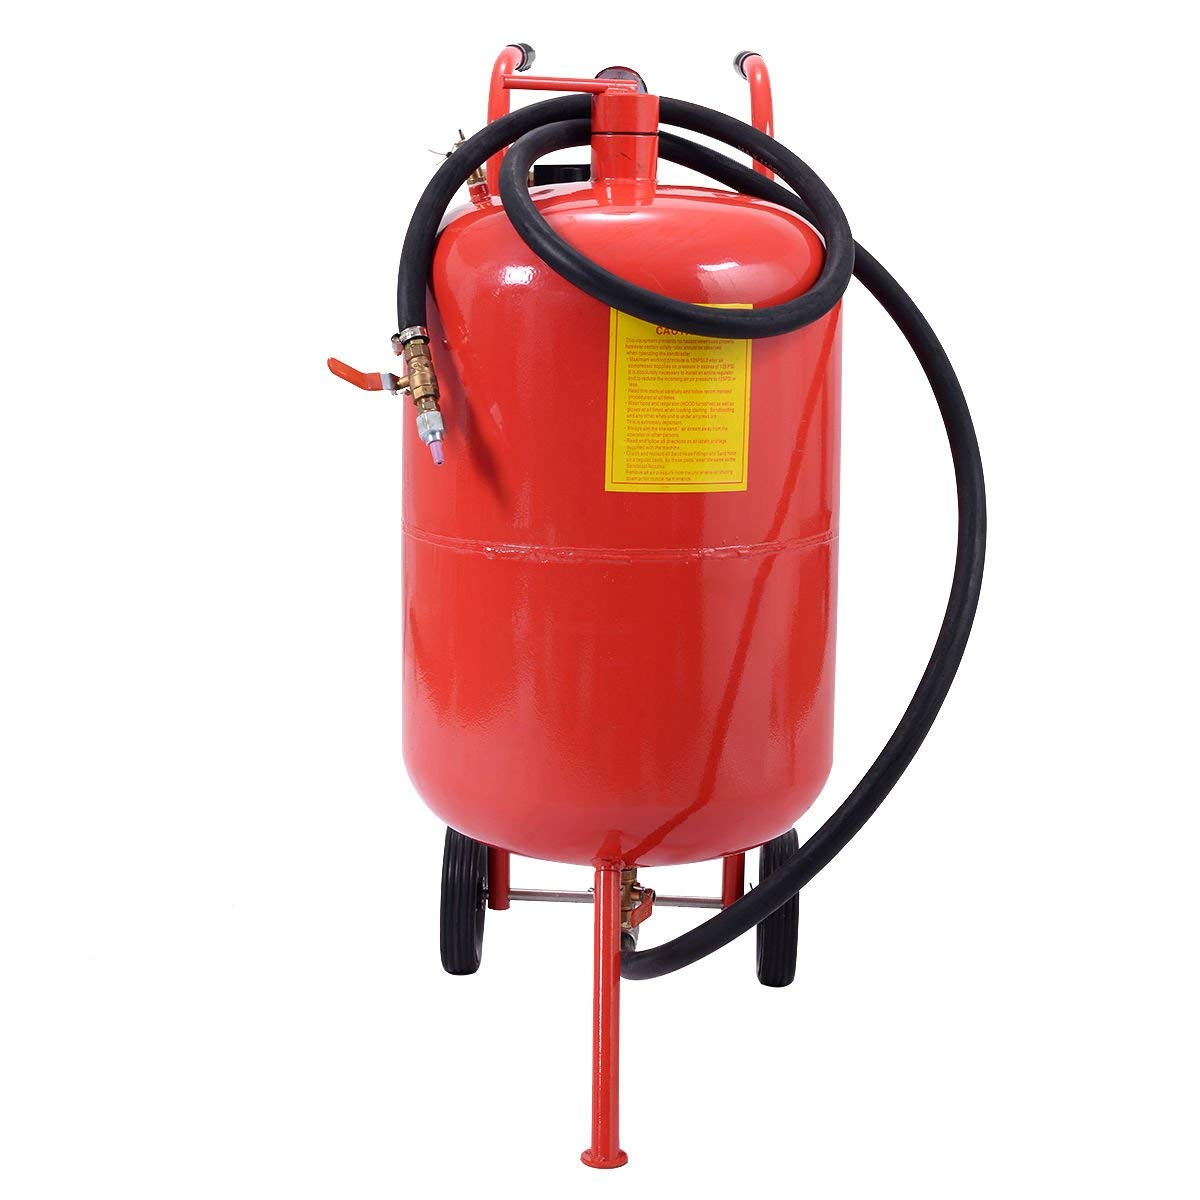 Goplus Portable Air Sandblaster Sand Blaster 20 Gallon Air Media Abrasive Blasting Tank